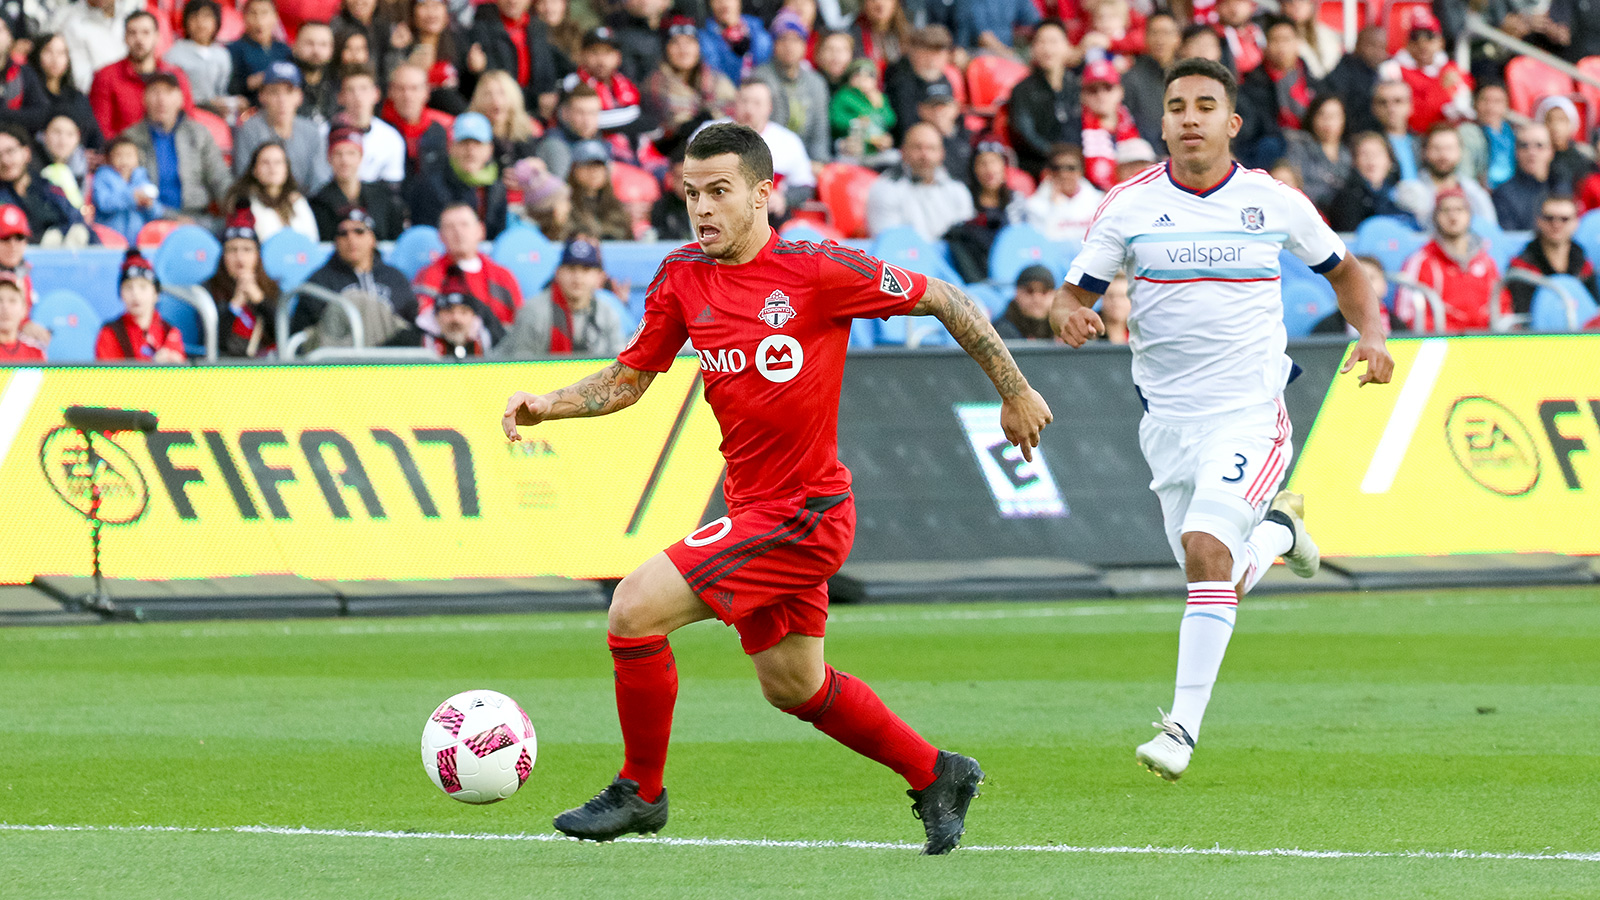 Giovinco breaking away from play.